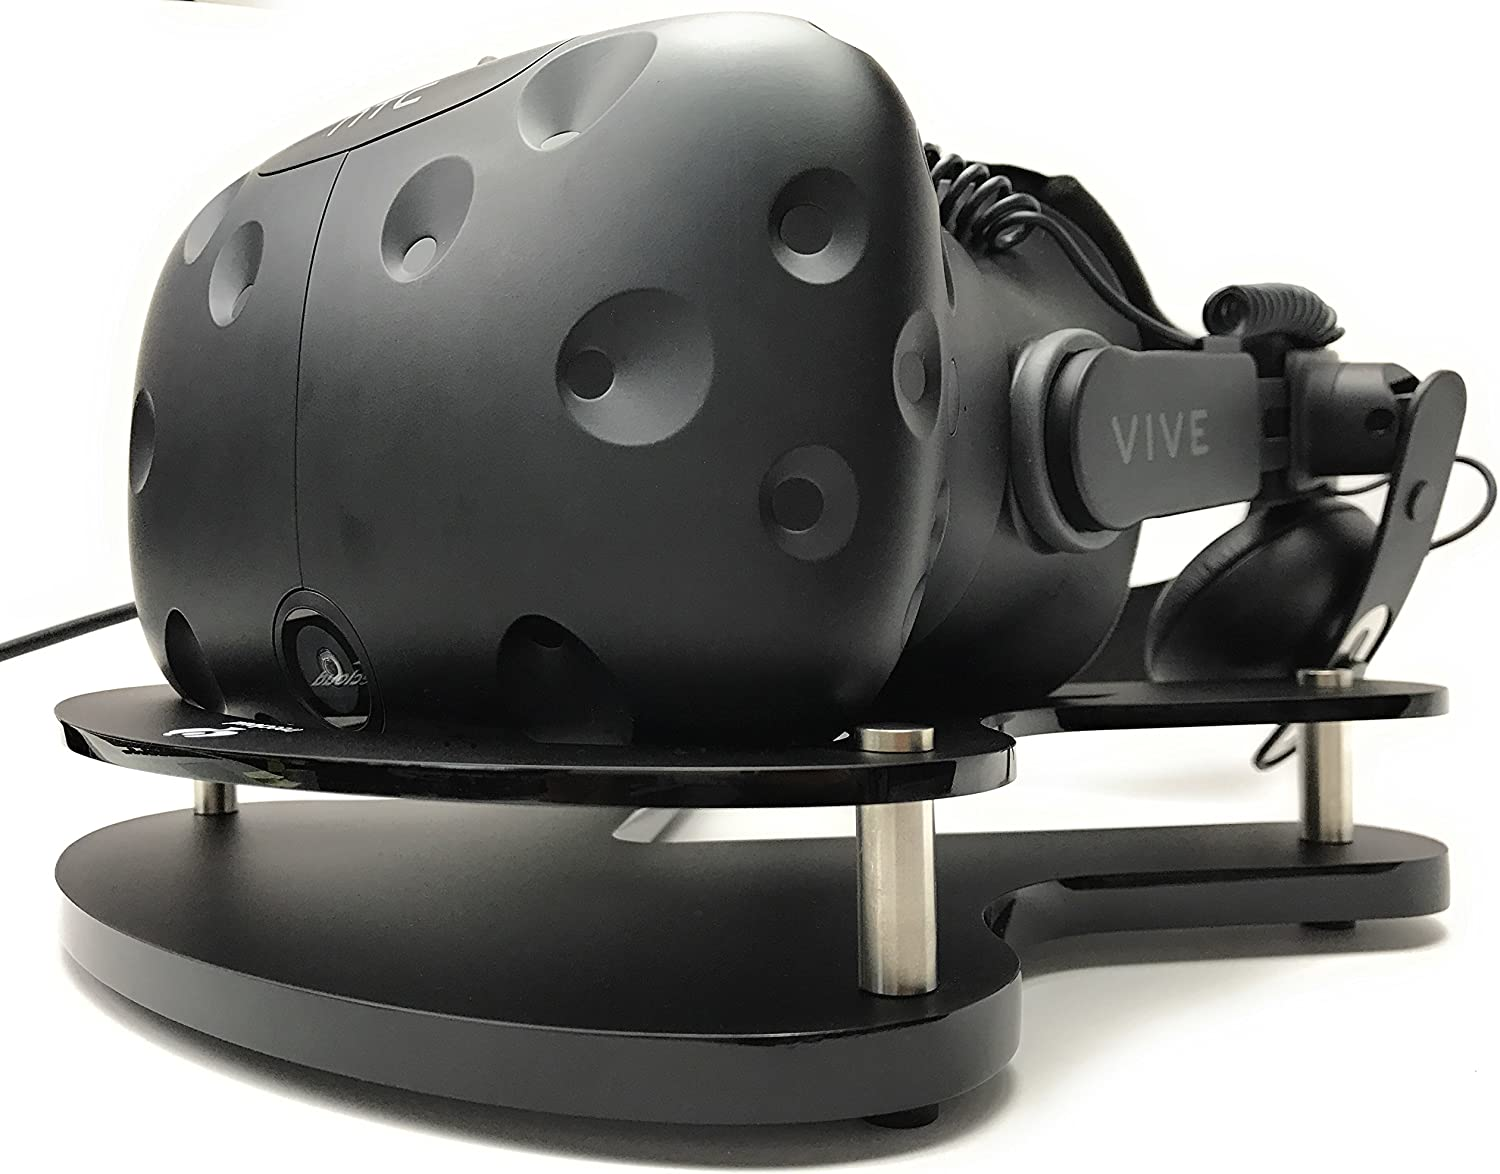 TreeCloud9 MindStand 4 VR Stand, HTC Vive VR Stand & Display Holder for HTC Vive Headset TreeCloud 9